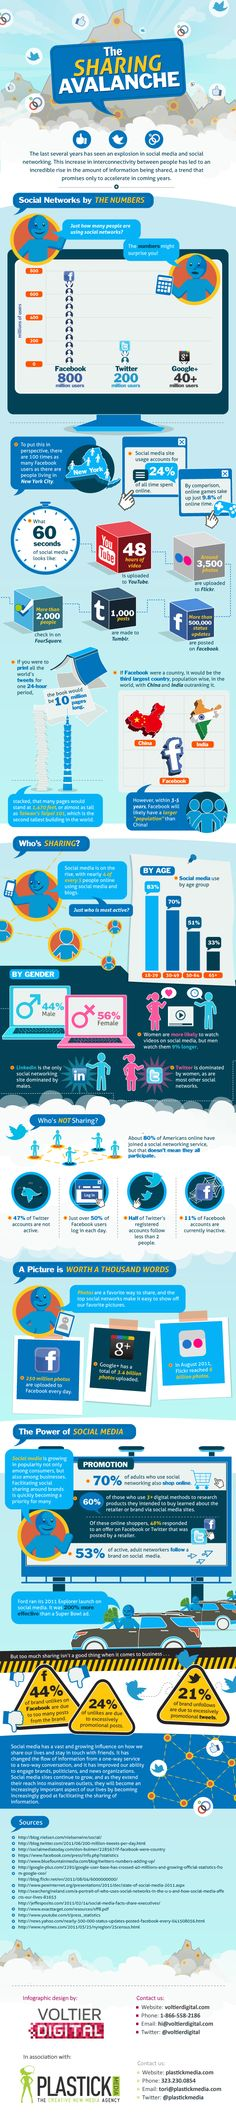 The Sharing Avalanche Infographic on social sharing. Marketing Mail, Social Media Digital Marketing, Social Media Tips, Social Networks, Internet Marketing, Online Marketing, Social Media Marketing, Marketing Ideas, Content Marketing